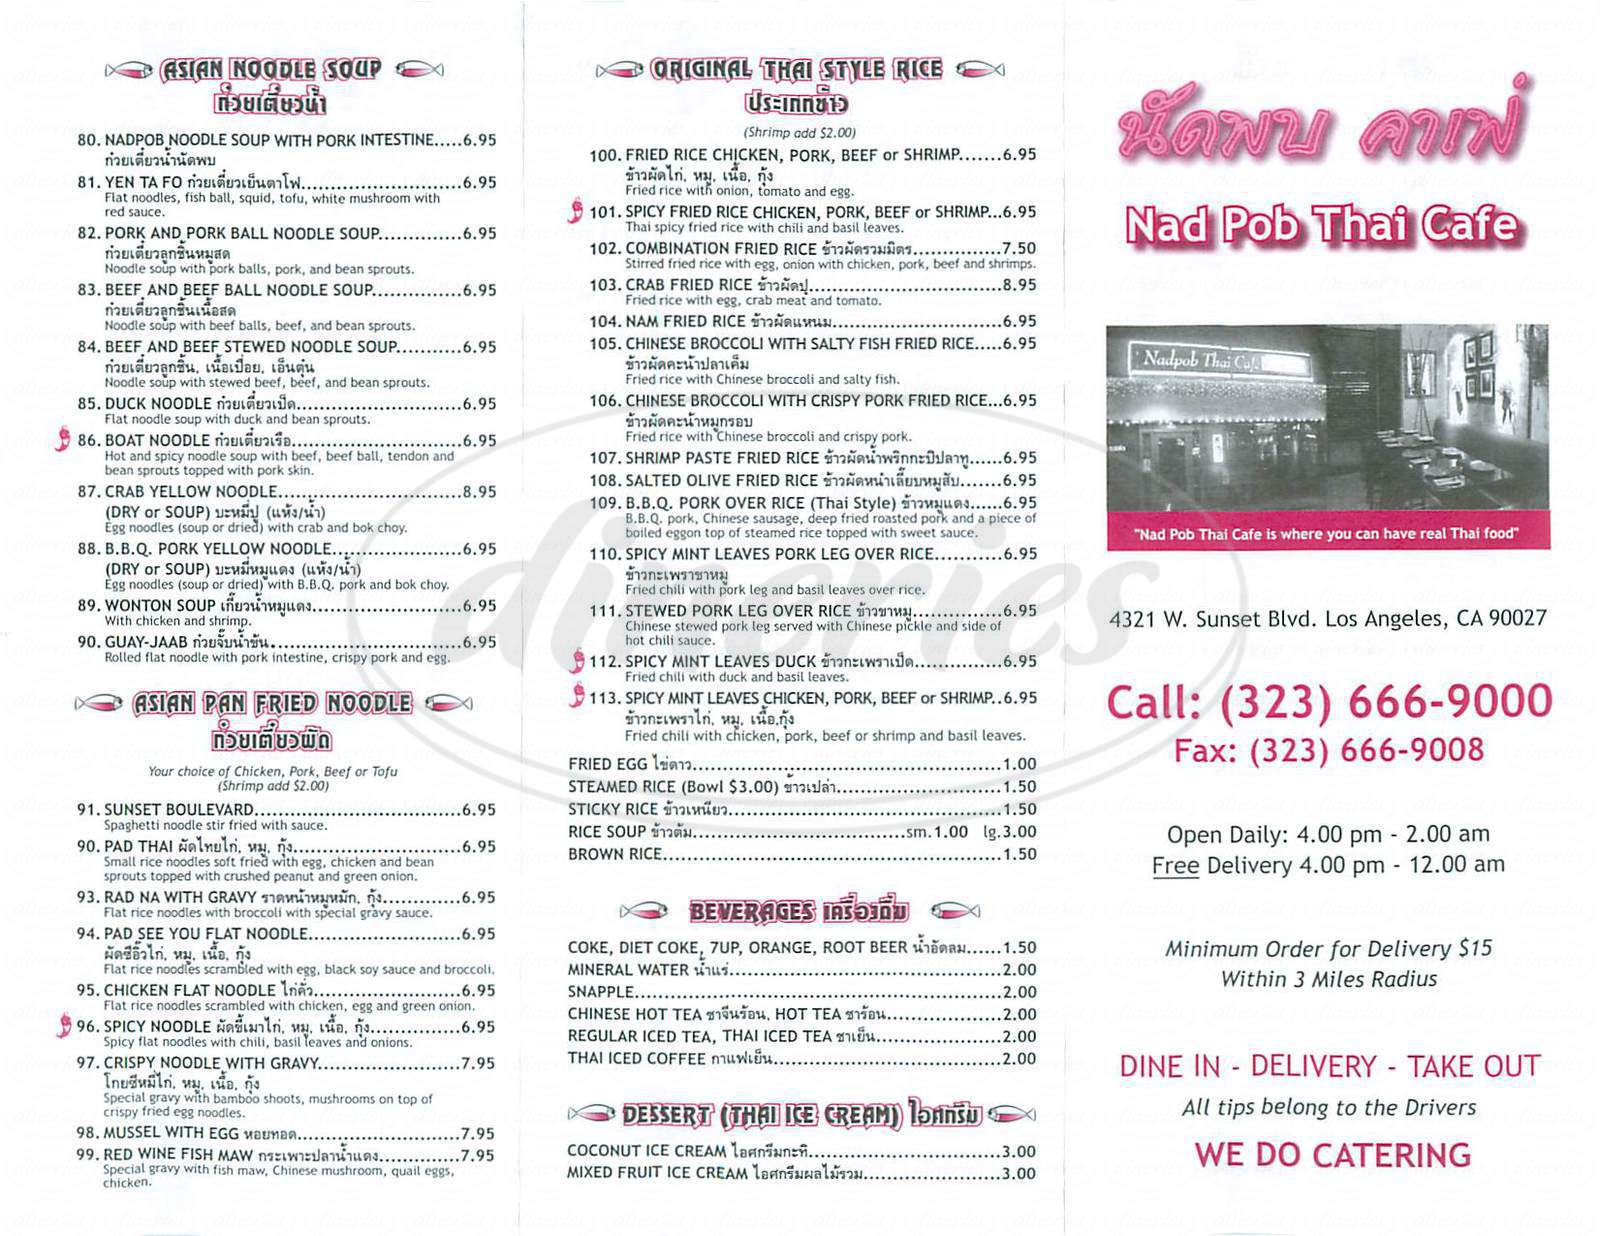 menu for Nadpob Thai Café